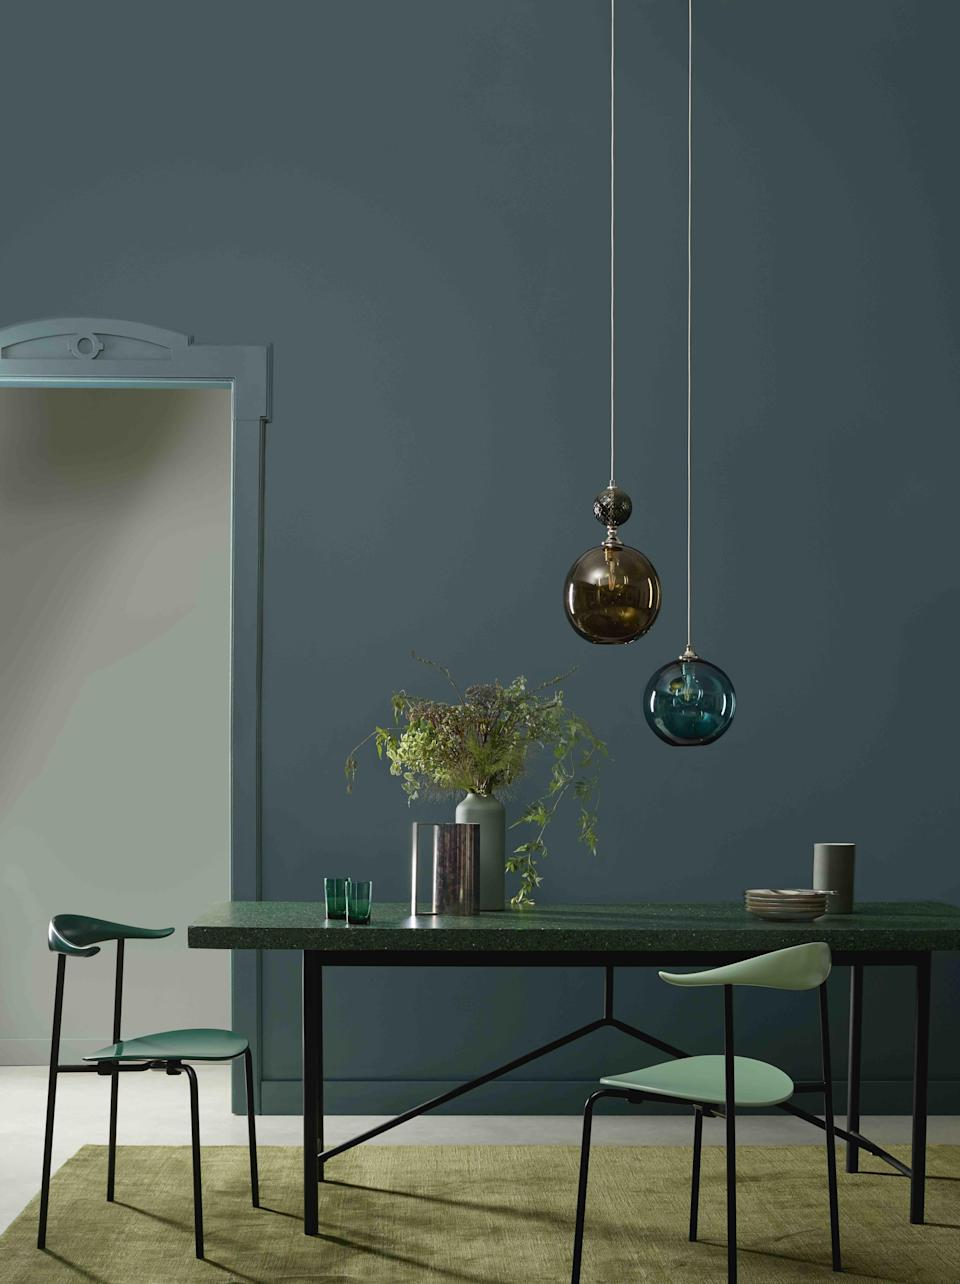 "<p class=""body-dropcap"">At ELLE Decoration, we understand the power colour has and how the right paint choice can transform your home. It's this knowledge that has informed the selection of the 60 colours that make up the <a href=""https://elledecoration.co.uk/decorating/a31130329/elle-decoration-collaborates-crown-paints-collection/"" rel=""nofollow noopener"" target=""_blank"" data-ylk=""slk:ELLE Decoration by Crown Paints collection"" class=""link rapid-noclick-resp"">ELLE Decoration by Crown Paints collection</a>.</p><p class=""body-text"">The carefully curated edit helpfully categorises the paints into six user-friendly colour groups, spanning paler neutrals to moody and intense hues (prices start from £35 for 2.5 litres) making it easier for you to find a colour to suit every decorating project. </p><p class=""body-text"">Here, we've selected a few of our favourites to inspire you to experiment with colour in every room. </p><p class=""body-text"">And if you're in need of further paint inspiration check out our 10 achievable and creative <a href=""https://www.elledecoration.co.uk/decorating/a32695292/10-easy-and-creative-ways-to-transform-your-home-with-paint/"" rel=""nofollow noopener"" target=""_blank"" data-ylk=""slk:paint ideas"" class=""link rapid-noclick-resp"">paint ideas</a> and explore more about the benefits of <a href=""https://elledecoration.co.uk/decorating/a32767488/all-your-questions-about-eco-friendly-paints-answered/"" rel=""nofollow noopener"" target=""_blank"" data-ylk=""slk:eco-friendly paints"" class=""link rapid-noclick-resp"">eco-friendly paints</a>.</p>"